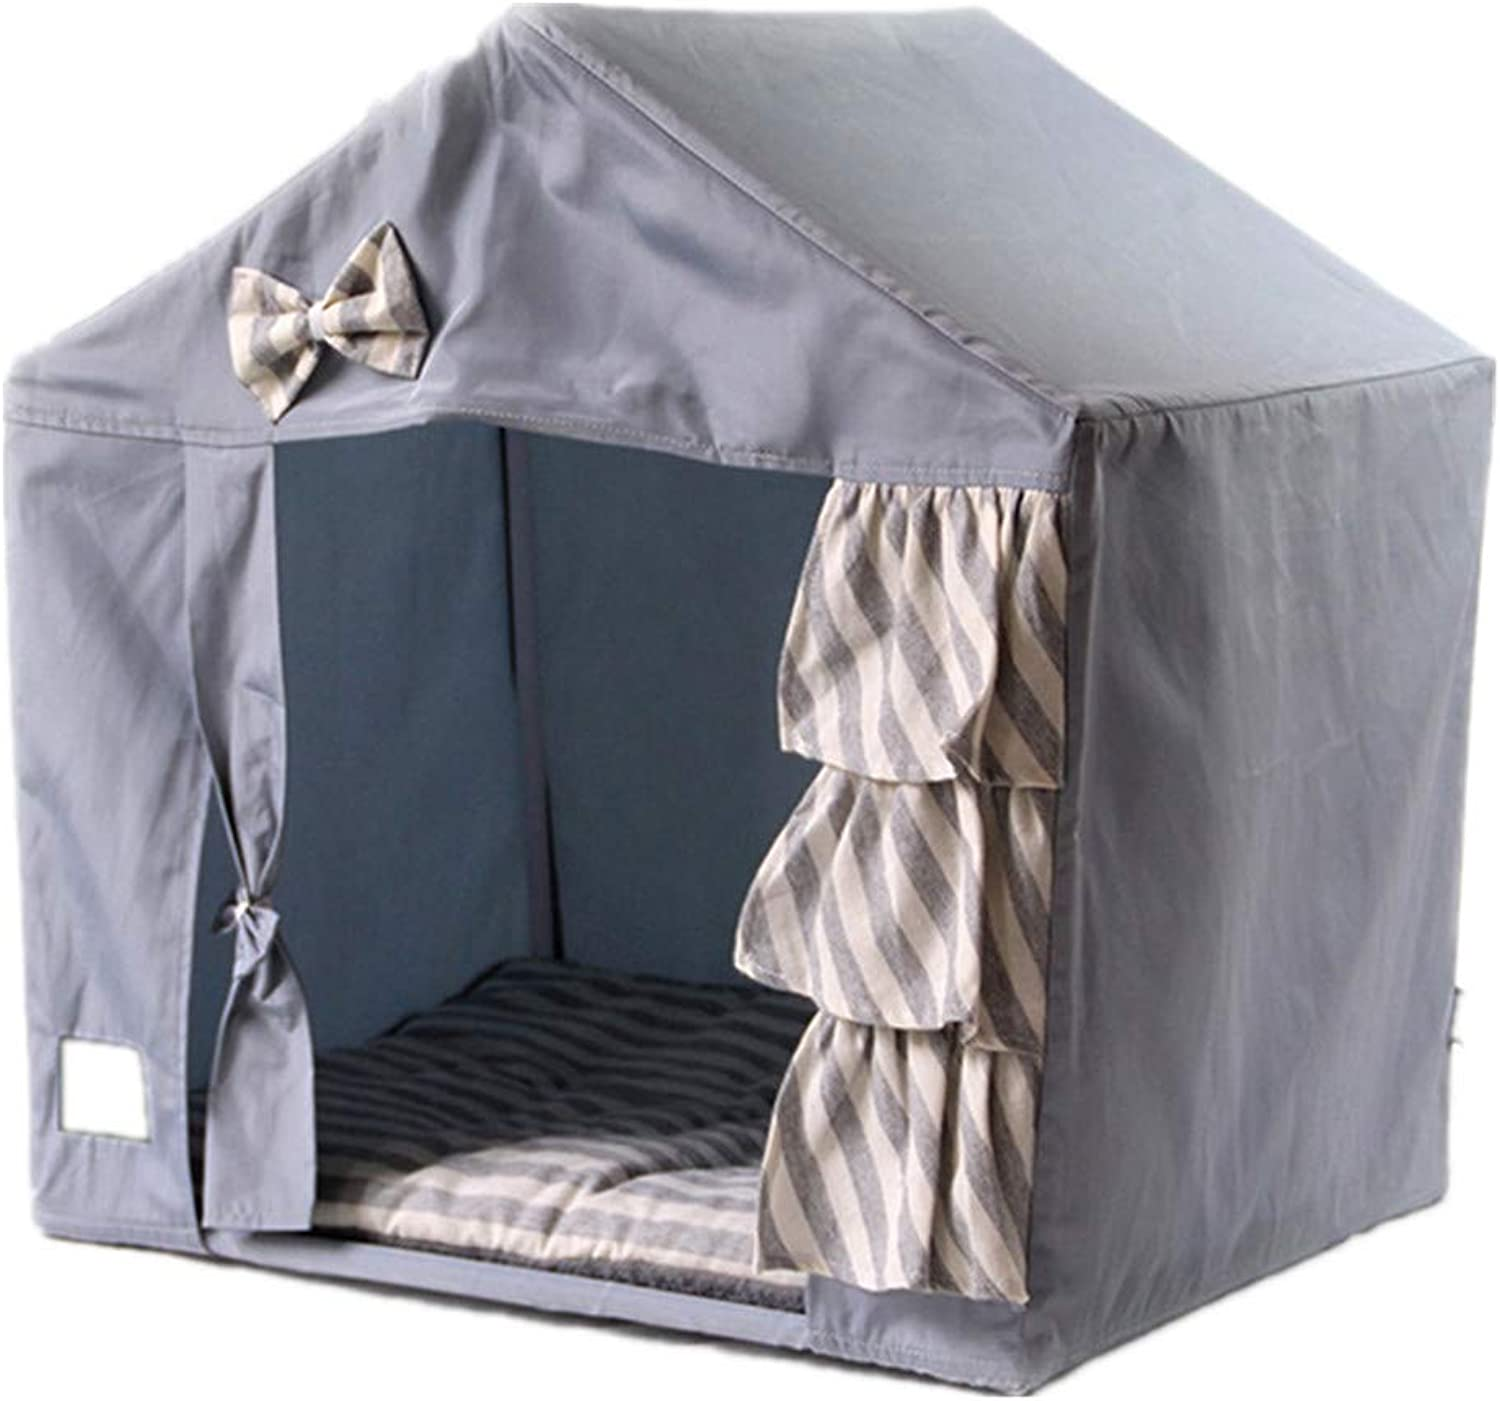 Mzdpp Pet Tent Washable And Detachable Four Seasons Universal Room Cat And Dog Universal Bed Nest Comfort 53  43  55Cm